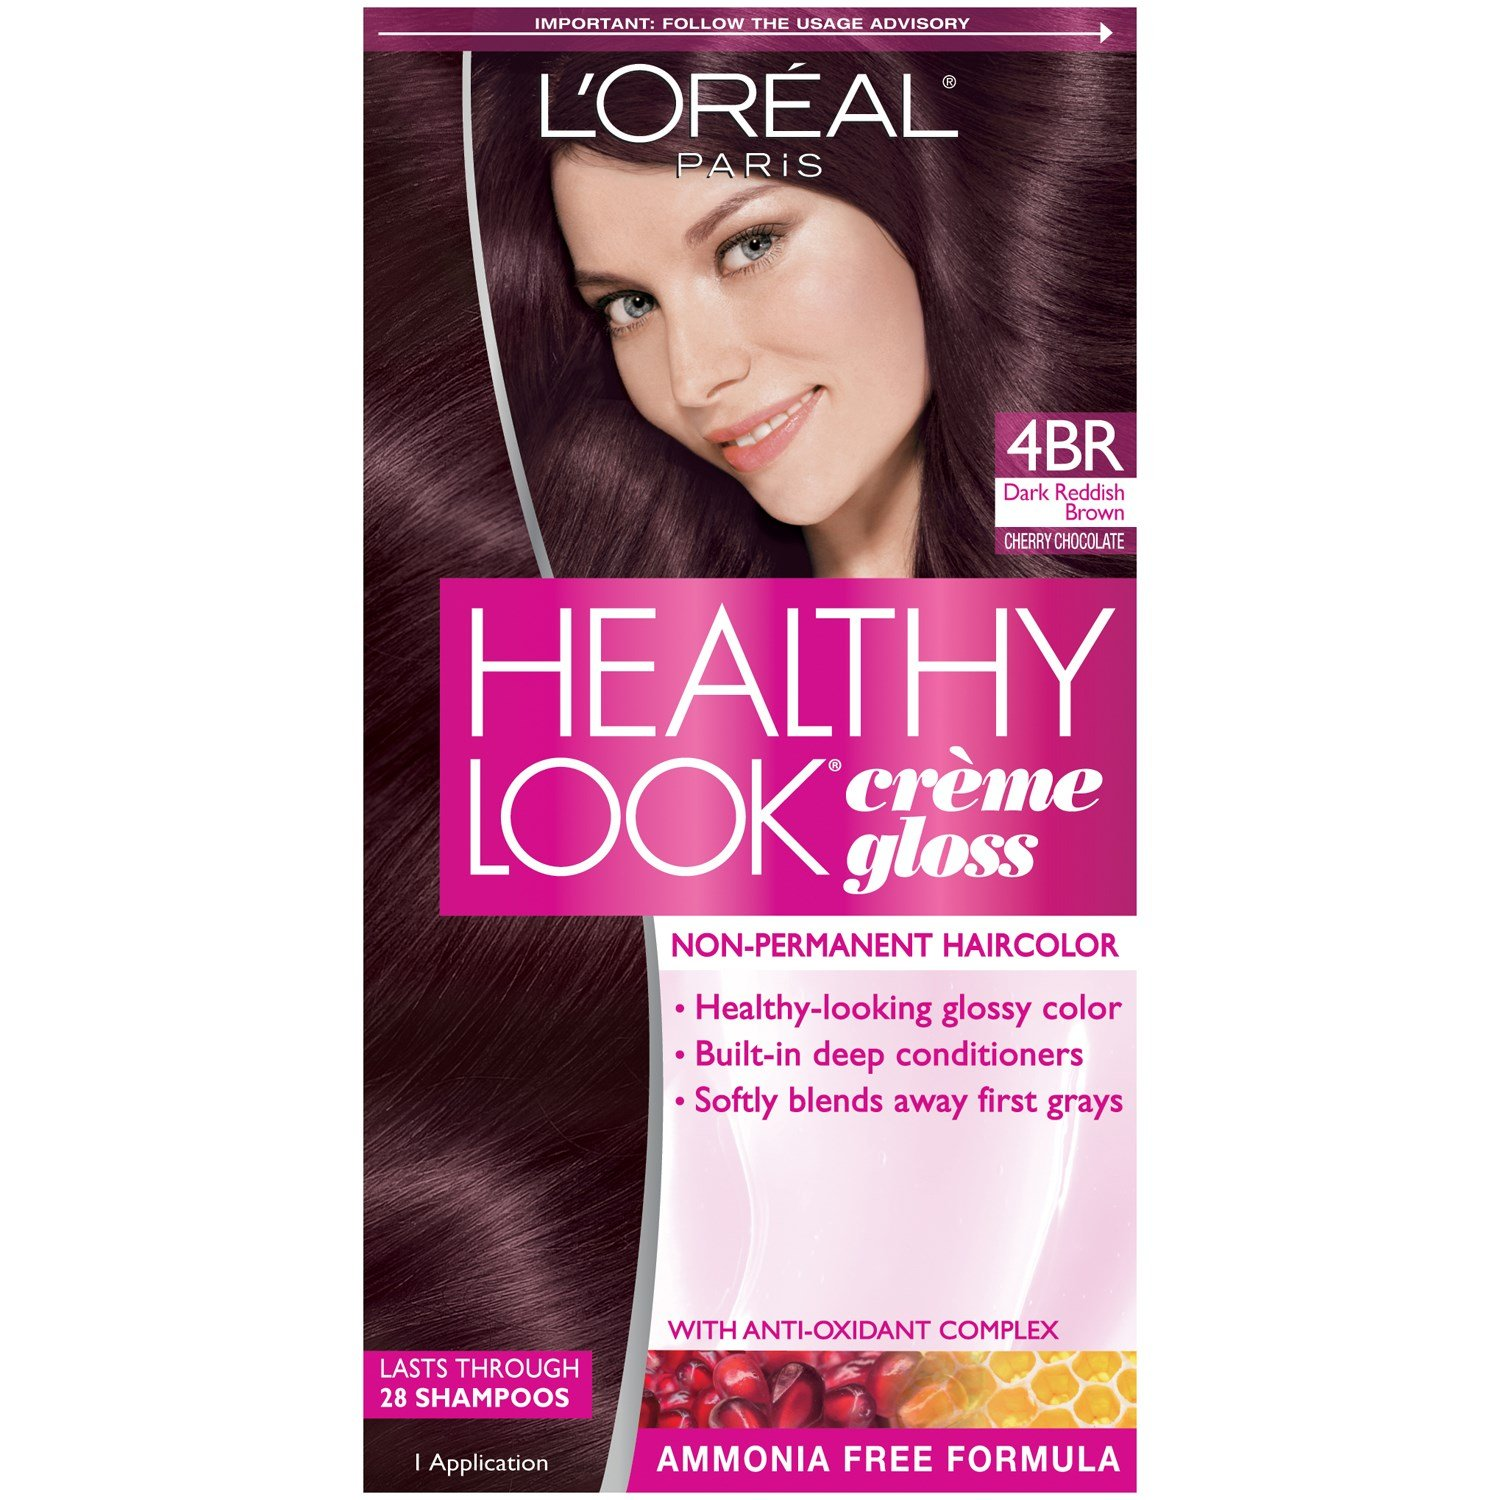 Amazon.com : L'Oreal Healthy Look Creme Gloss Hair Color 4Br Dark ...